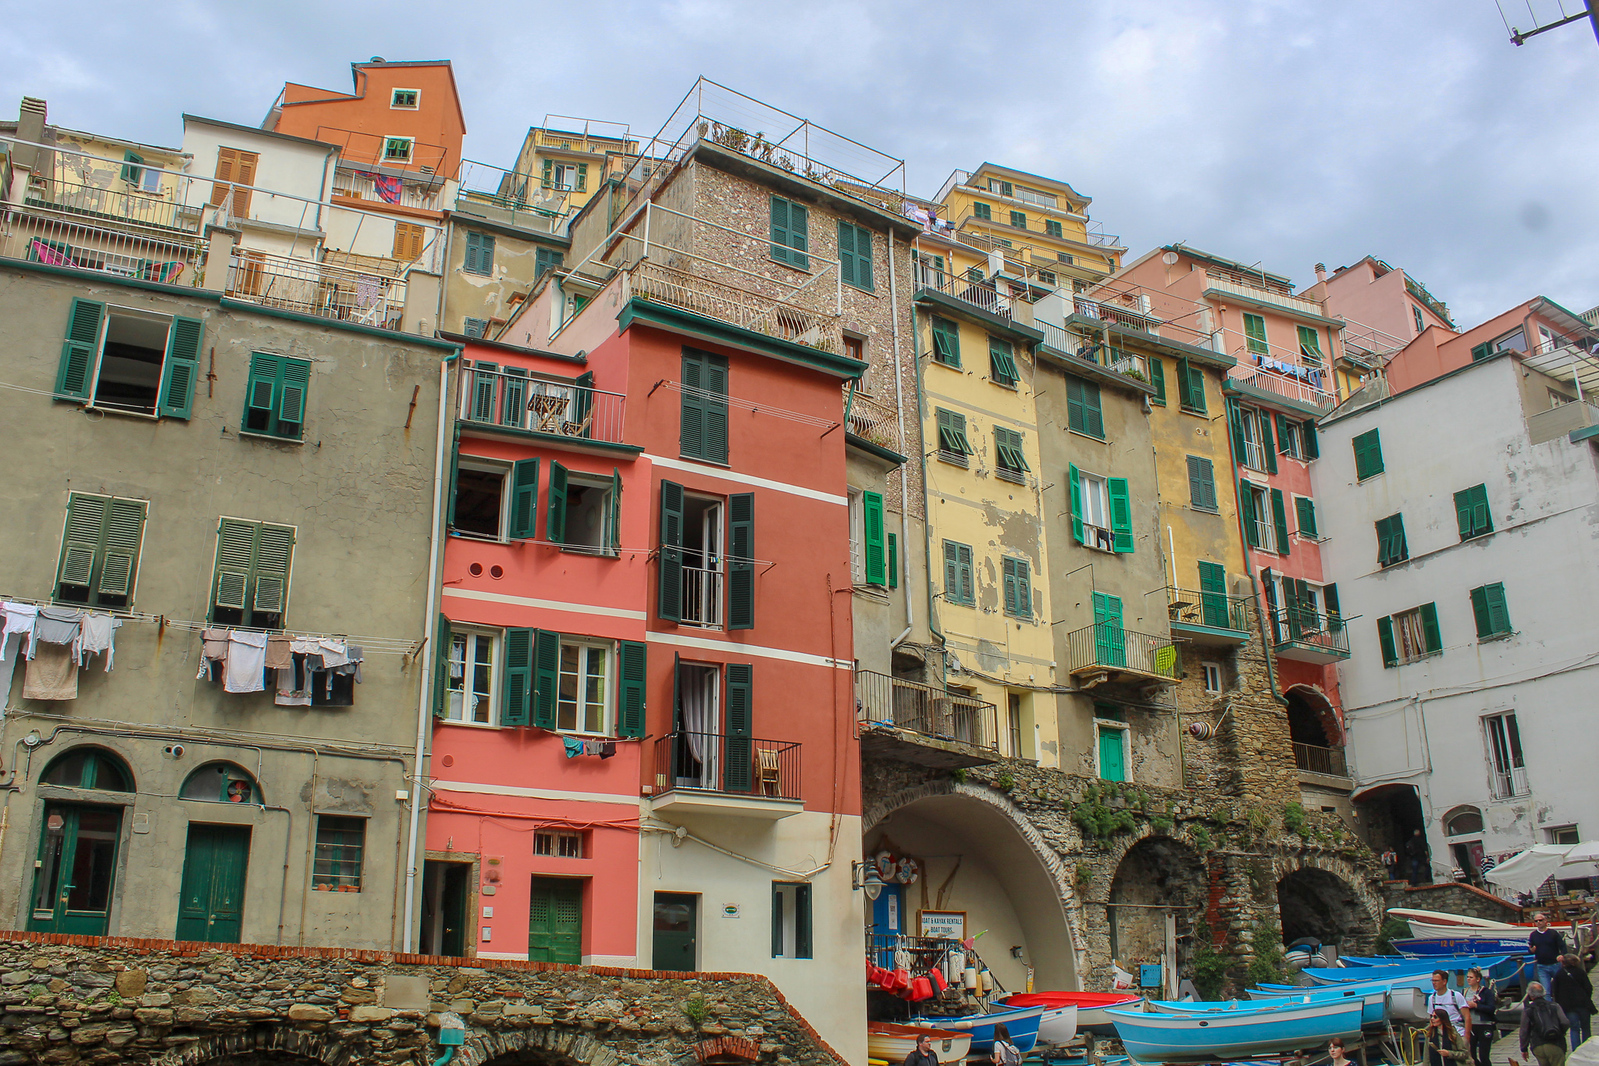 riomaggiore is a good option for where to stay in cinque terre